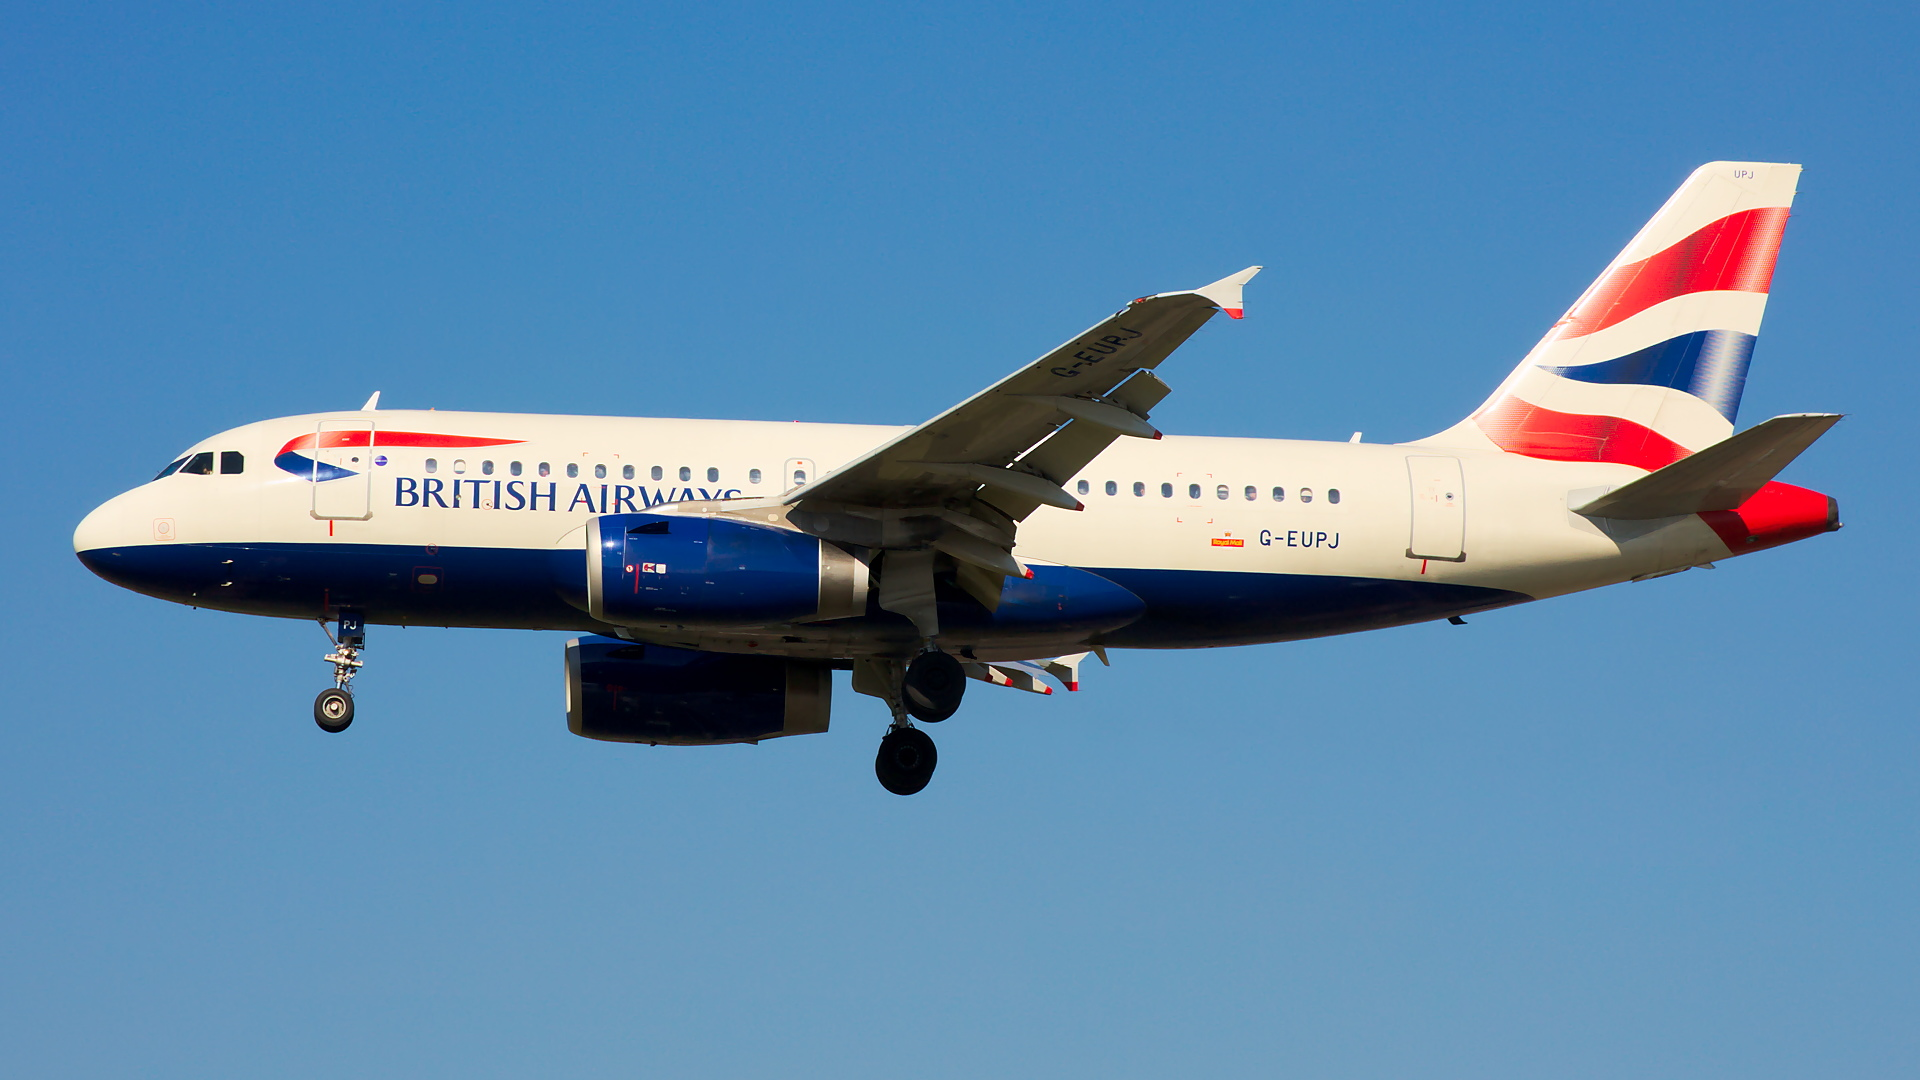 G-EUPJ ✈ British Airways Airbus A319-131 @ London-Heathrow